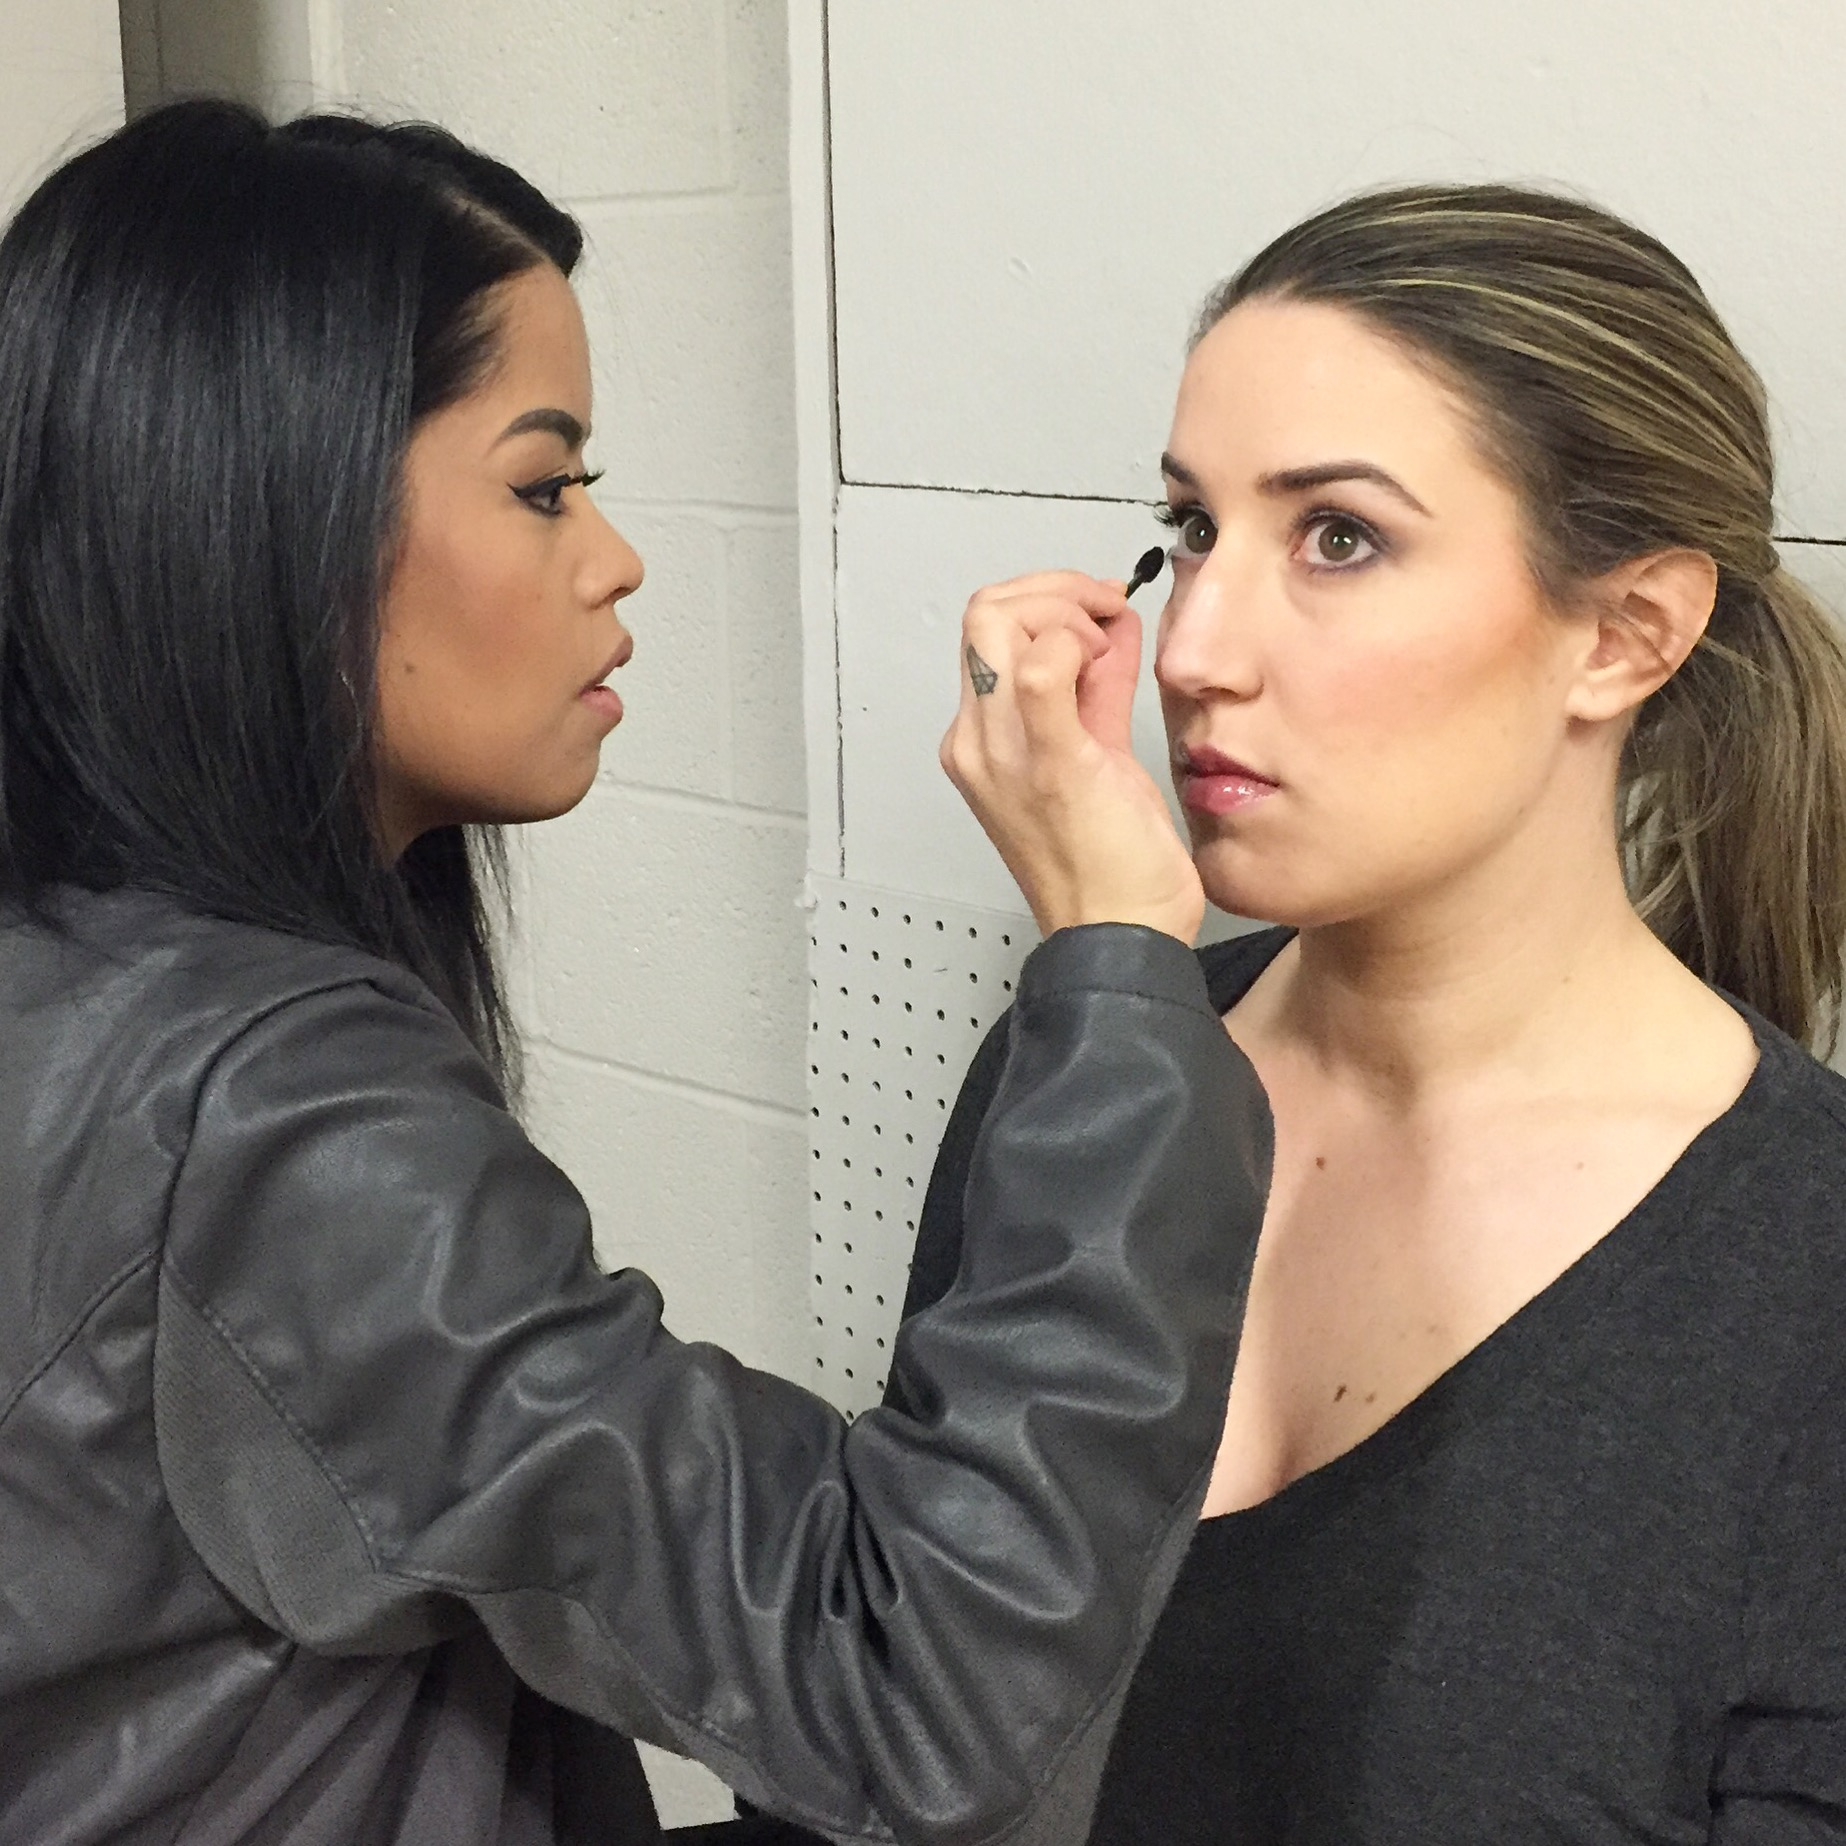 Samantha applying makeup for one of the beautiful models.